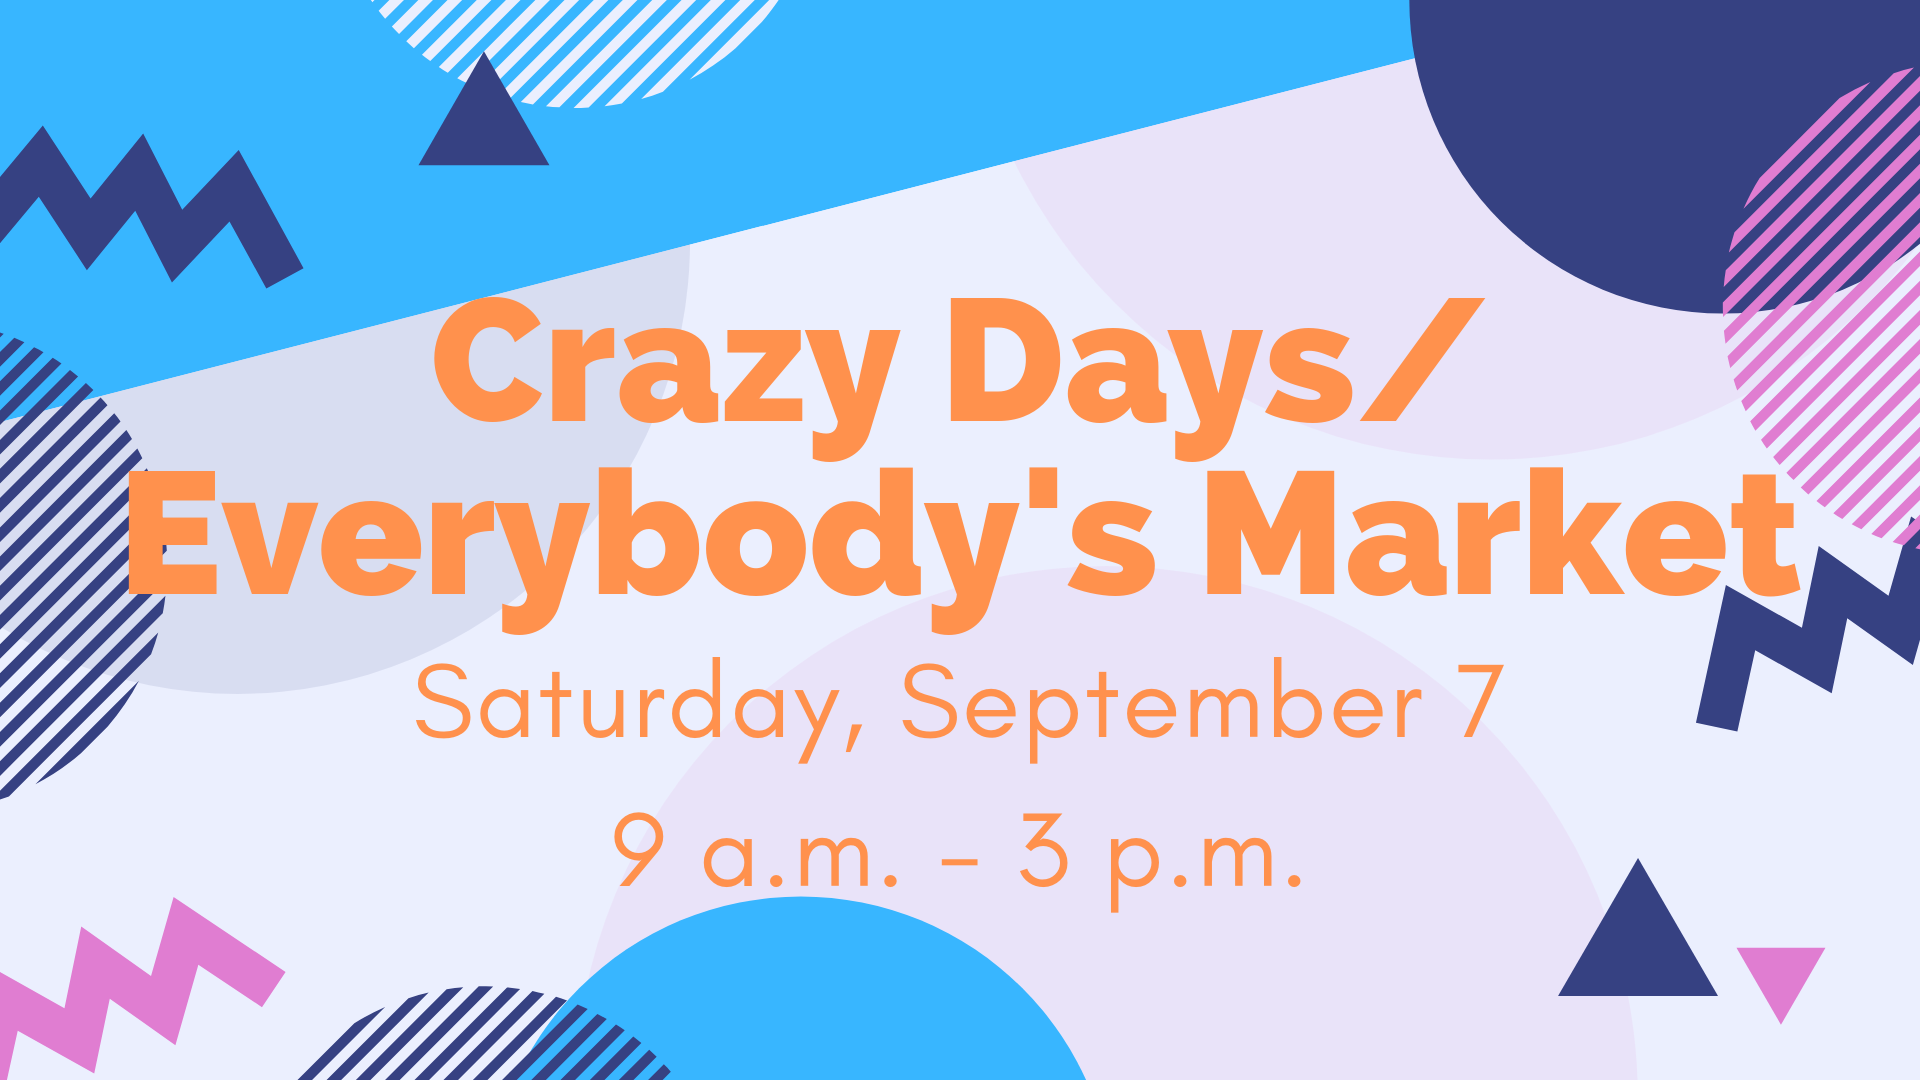 Crazy-Days-Everybody's-Market-Event-Cover-Photo.png